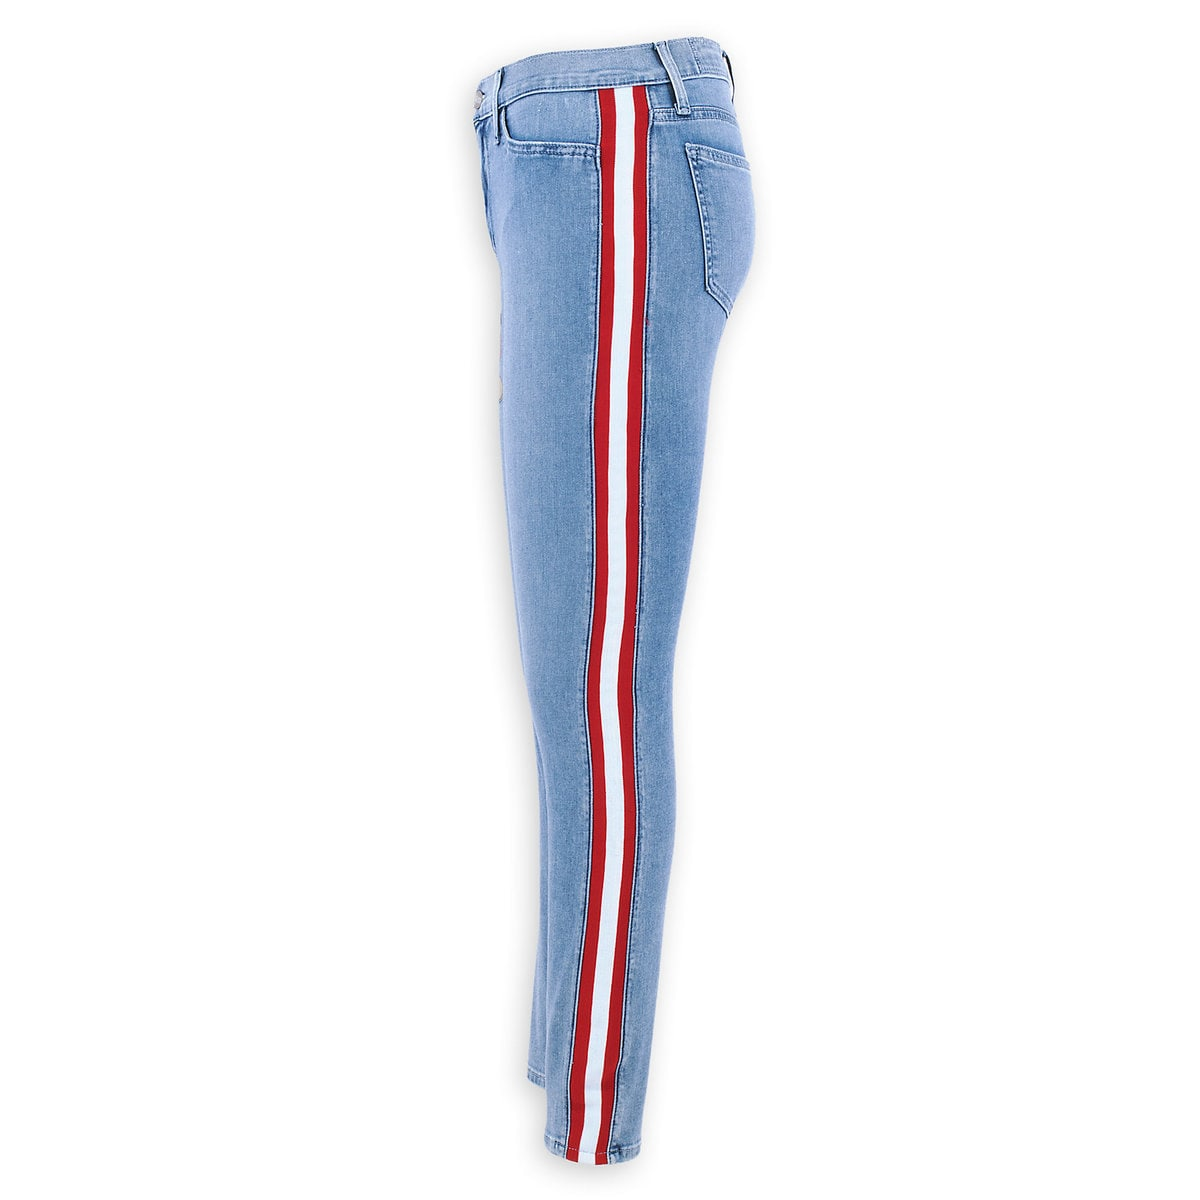 e8e3464323 Product Image of Mickey Mouse Tuxedo-Stripe Skinny Jeans by SIWY # 8